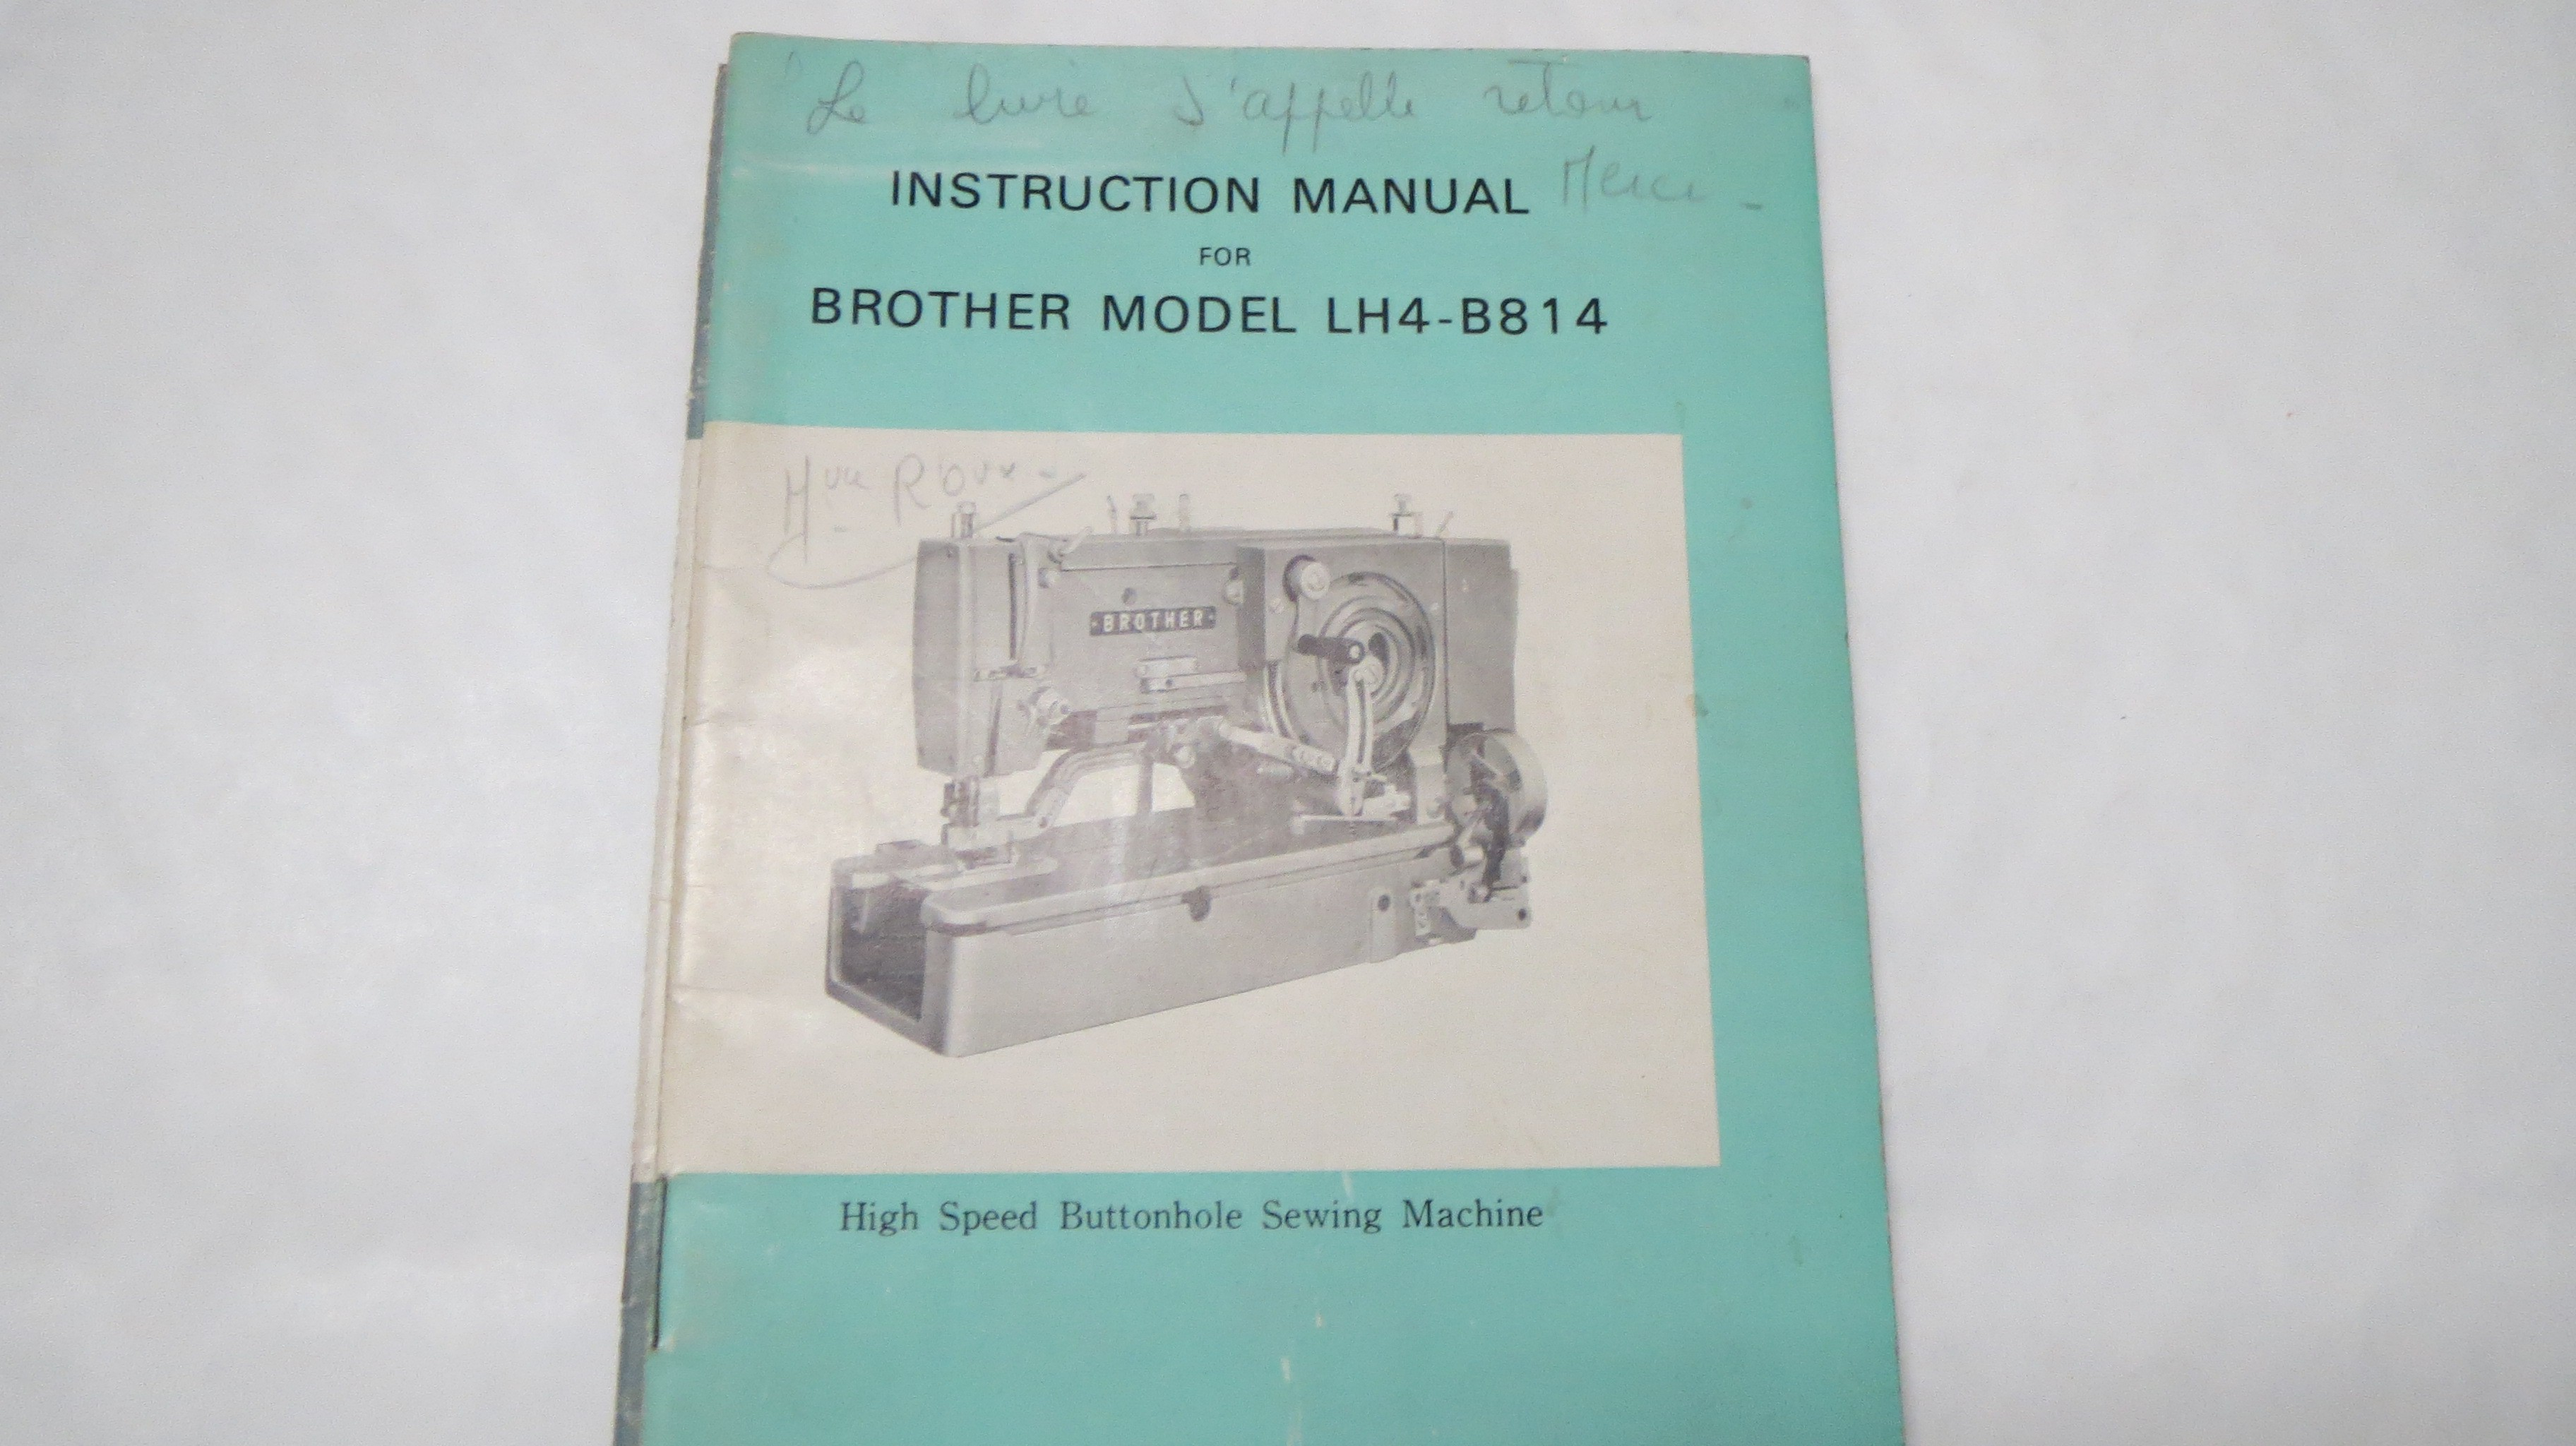 manual for brother lh4 b814 french plan te couture rh planetecouture com brother lh4-b814-2 instruction manual brother lh4-b814 service manual